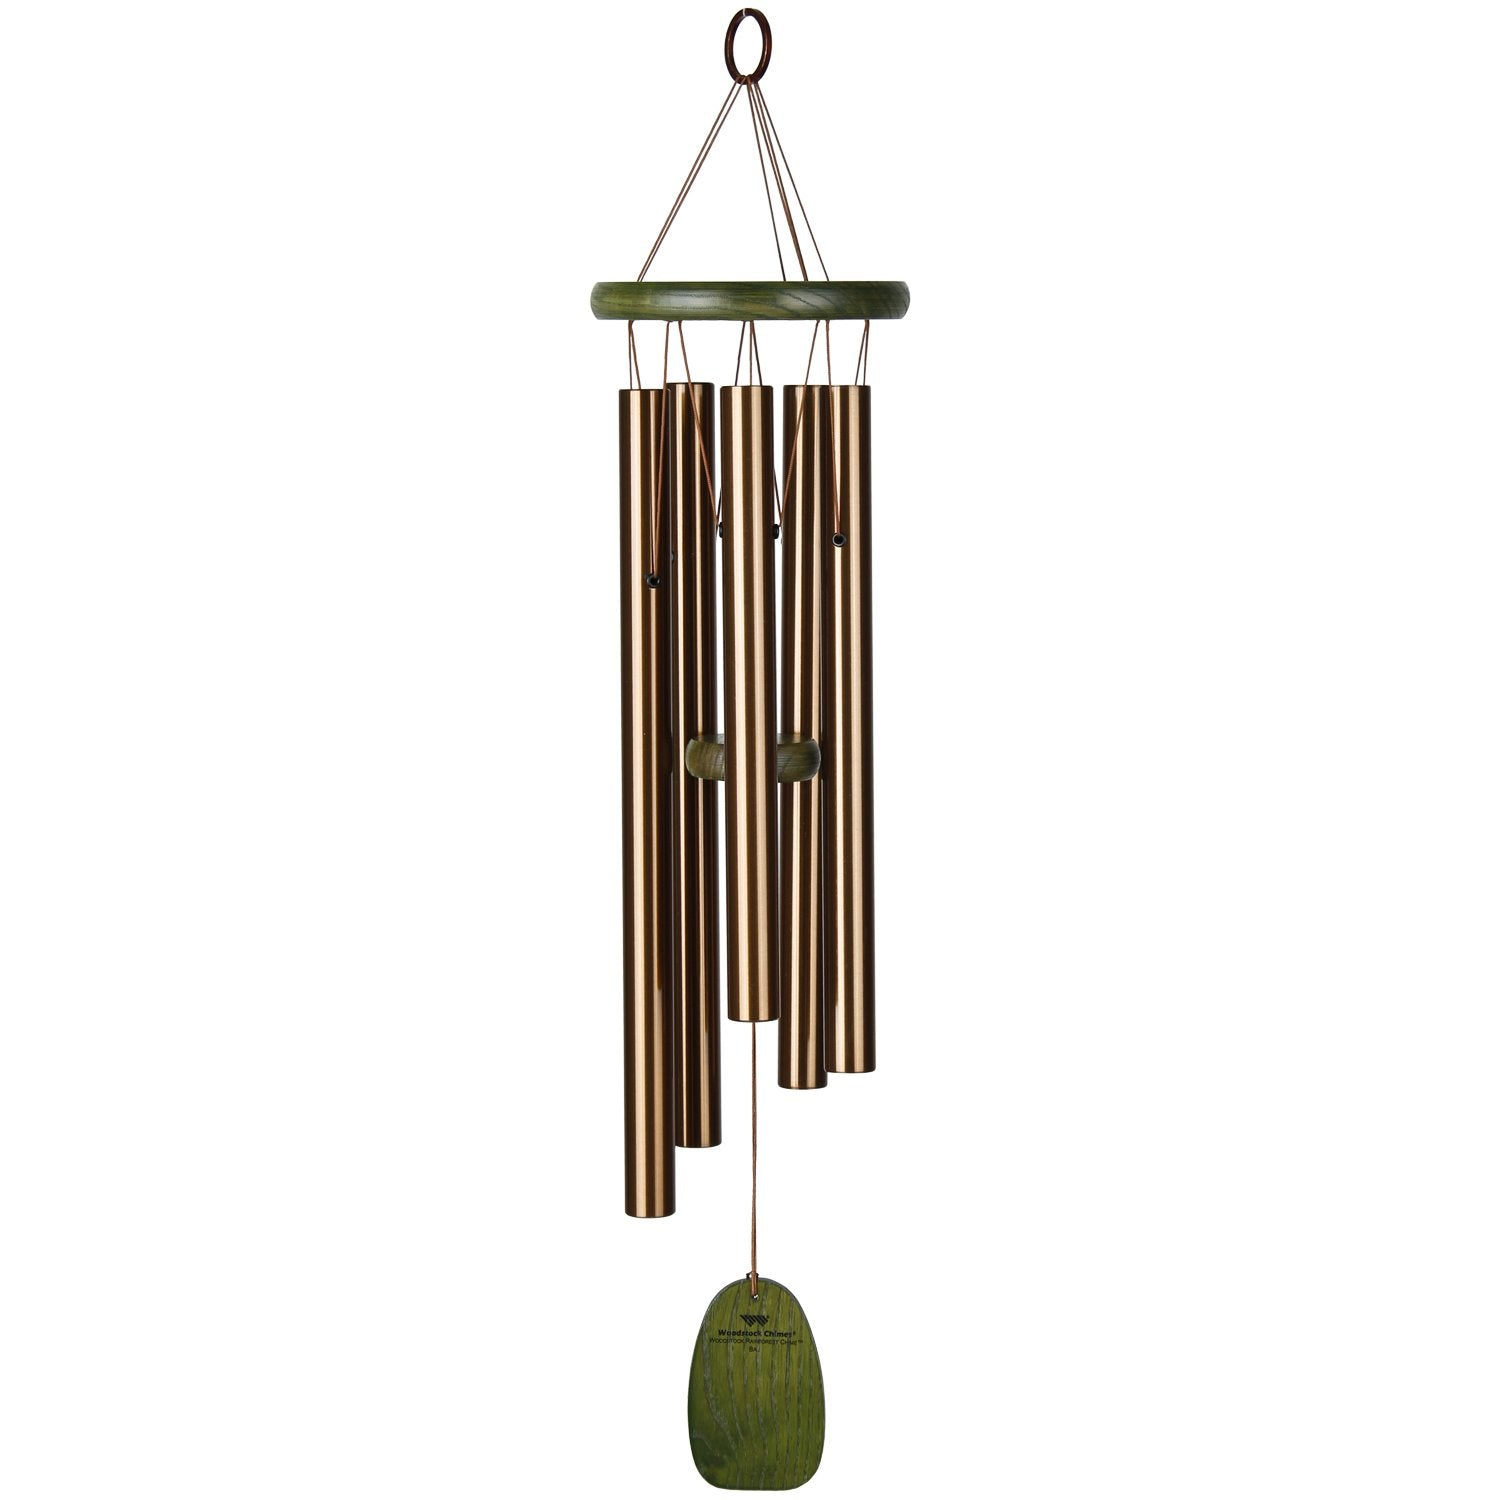 Rainforest Chime - Bali full product image